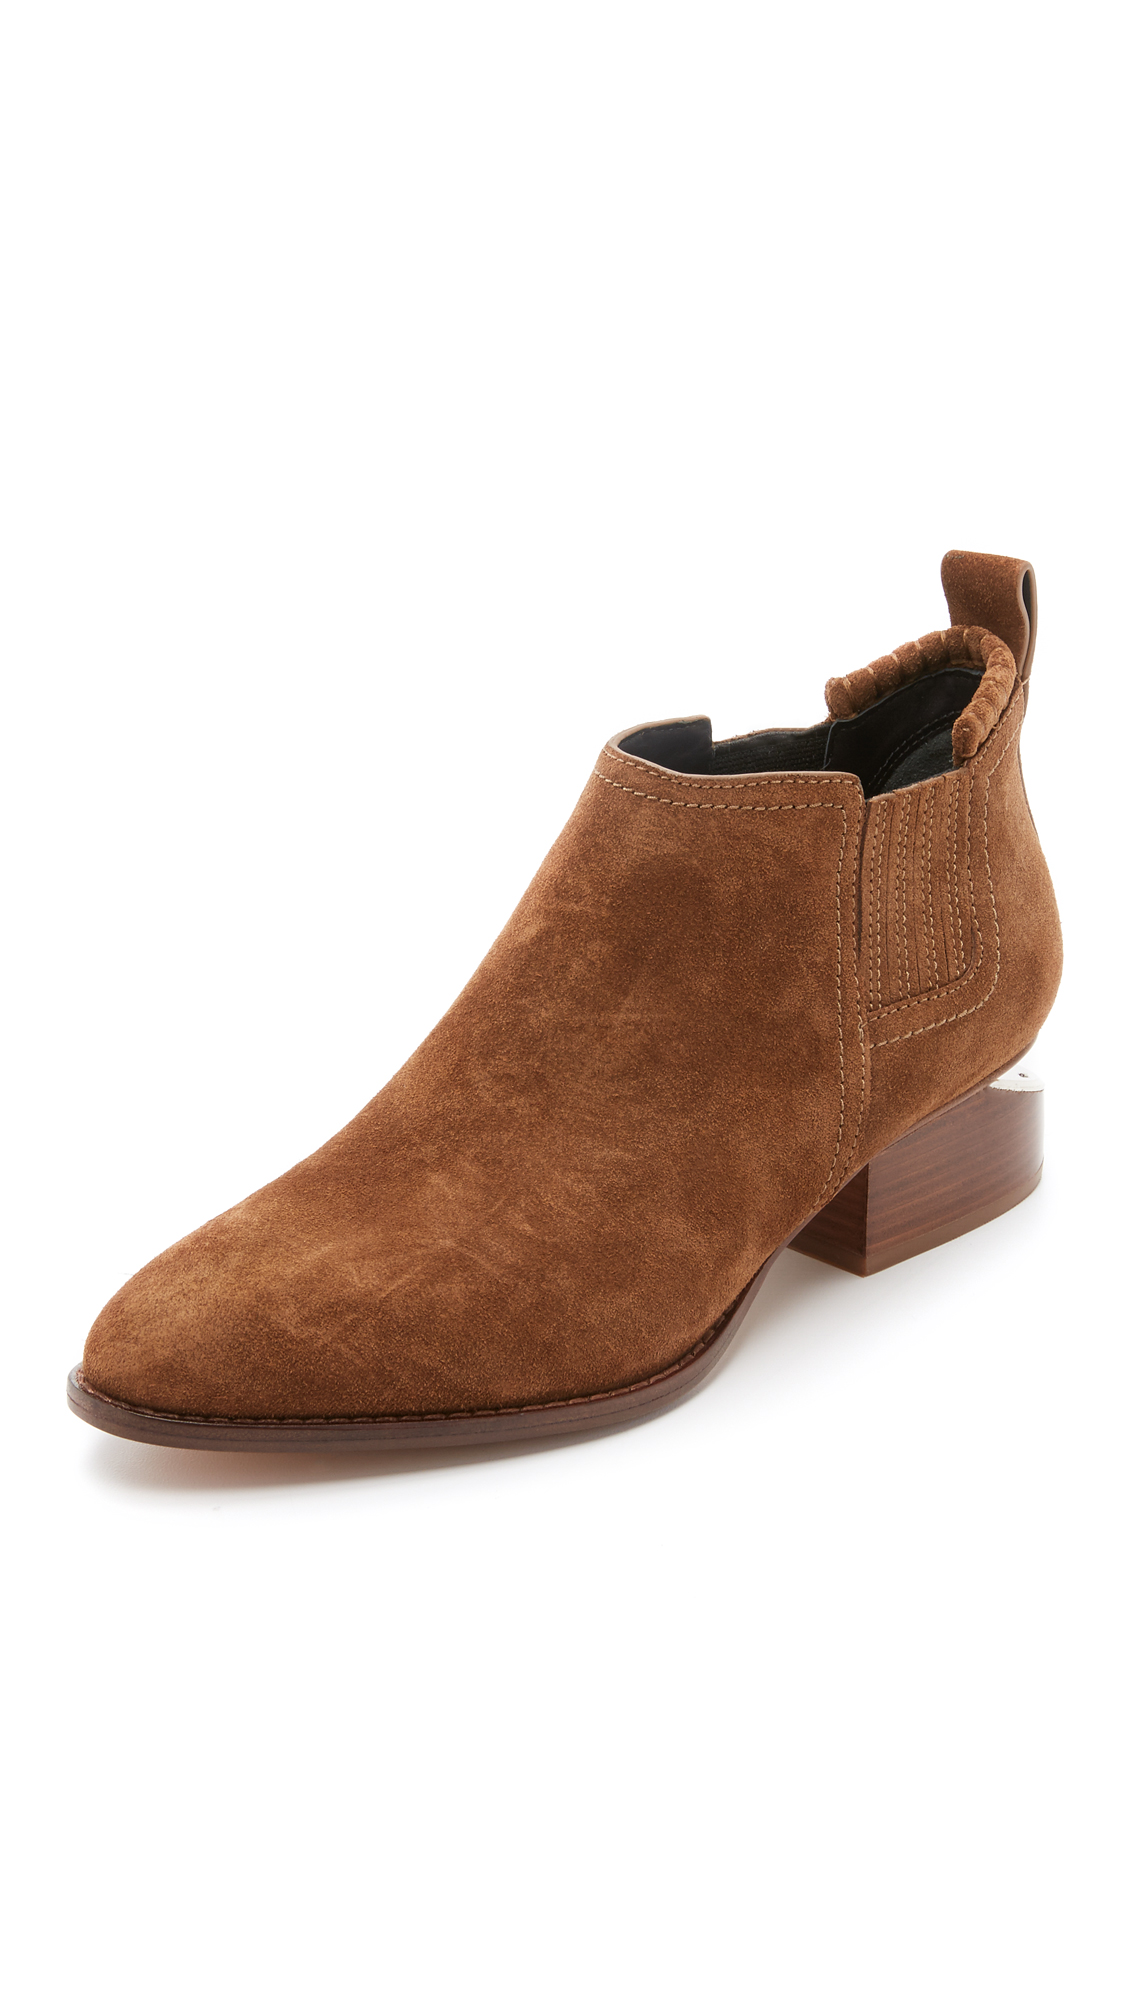 Woman Kori Suede Ankle Boots Light Brown